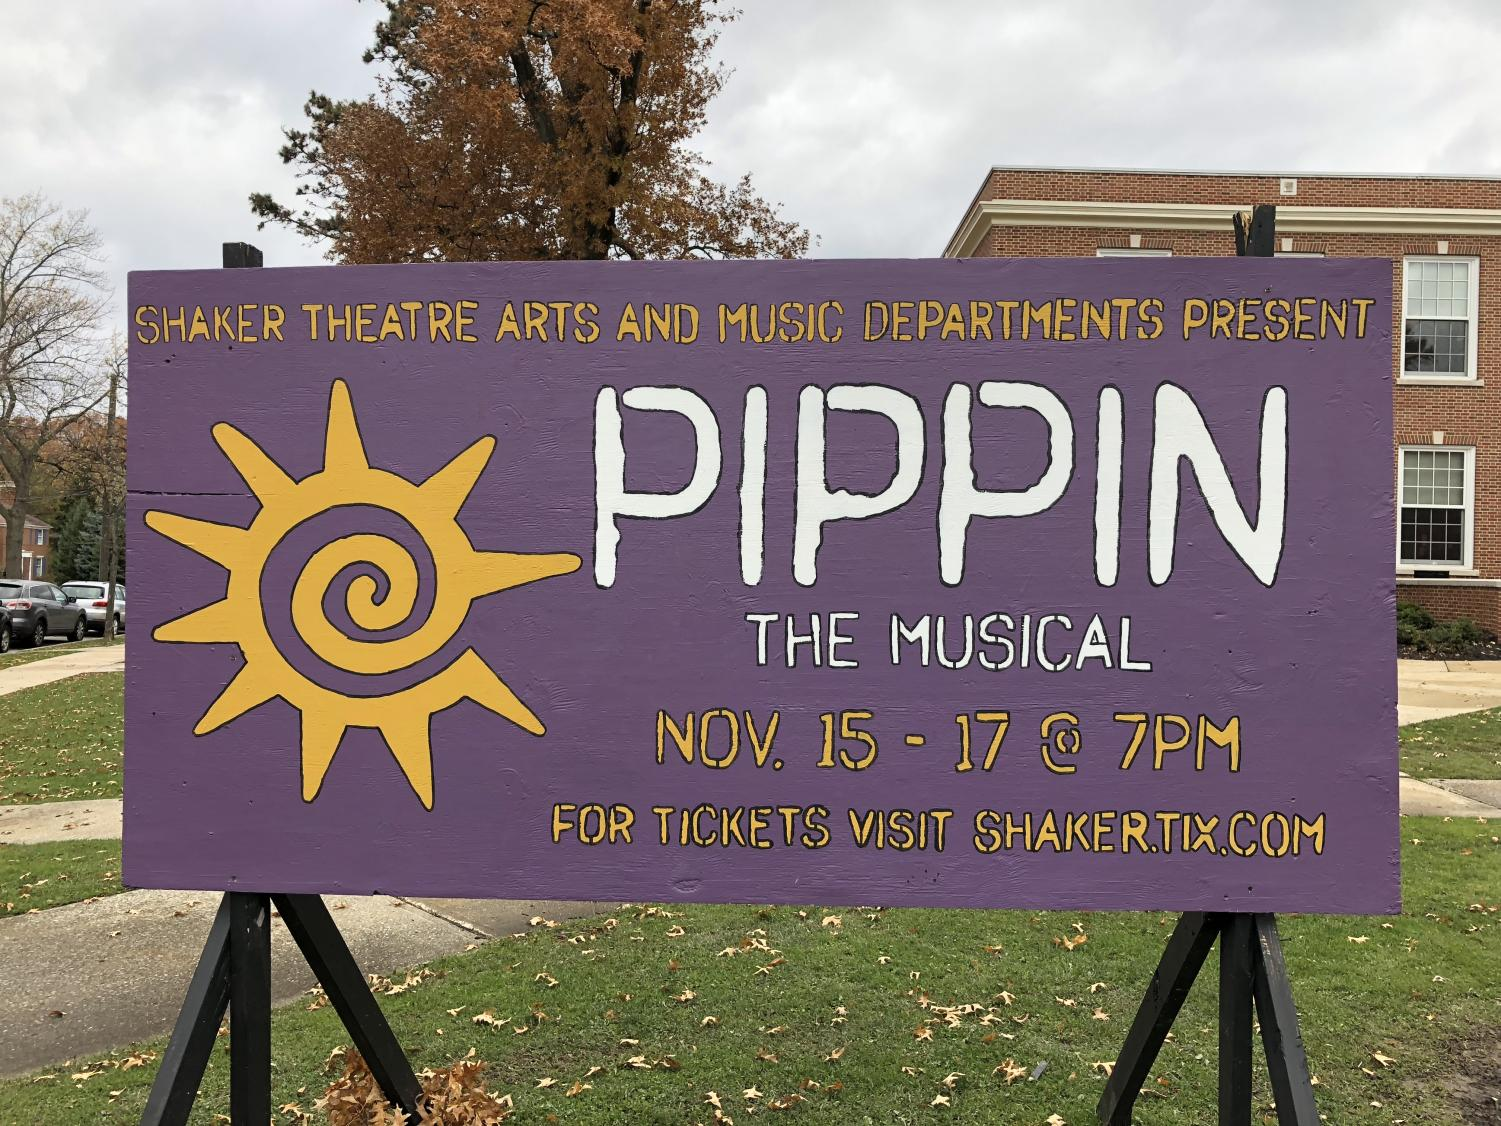 The Shaker Theatre Arts Department will perform